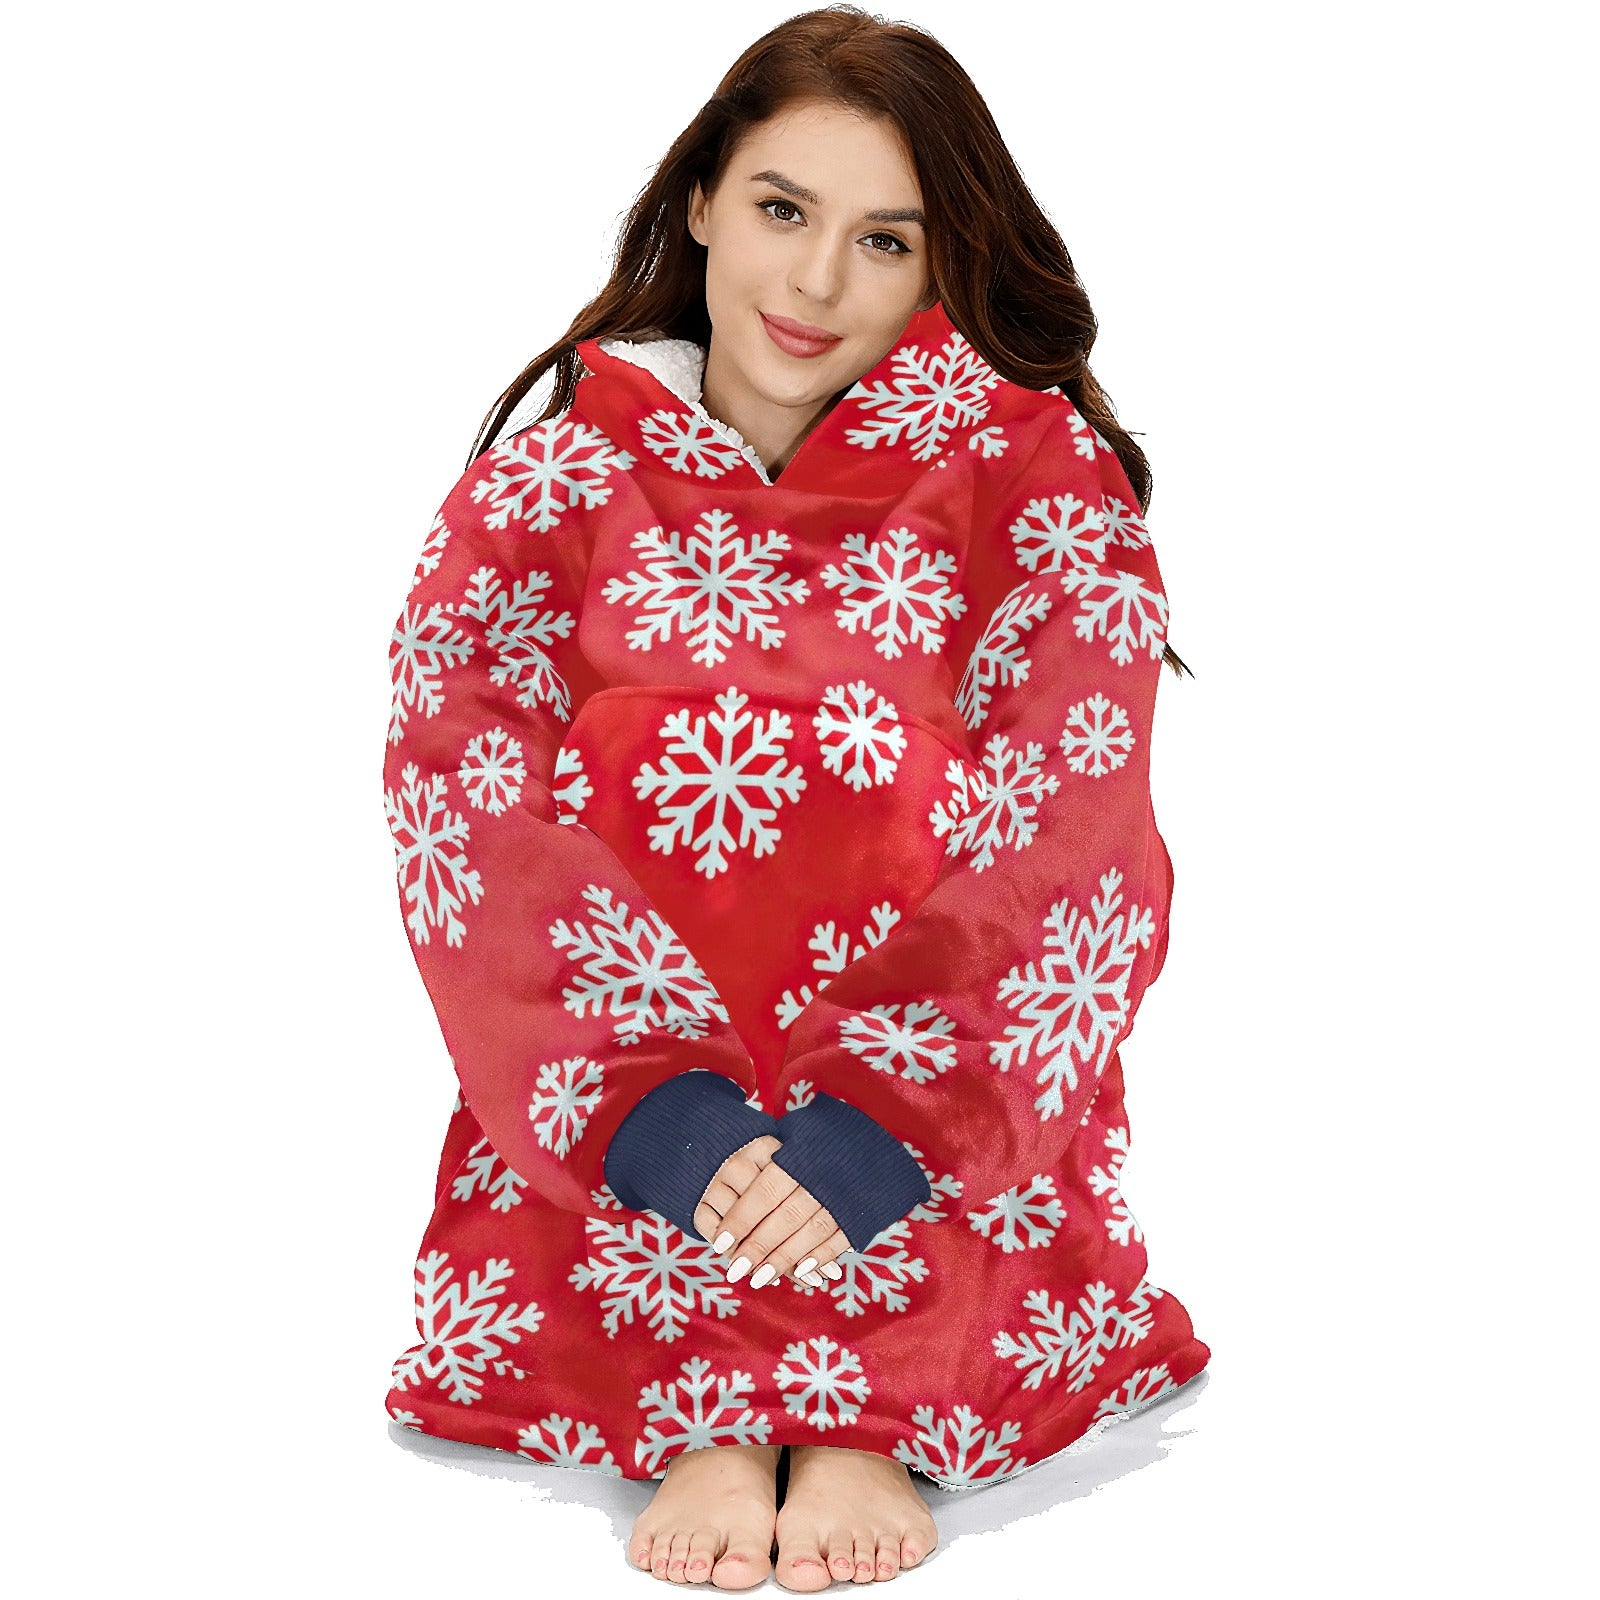 Winter Big White Snowflakes Pattern Red Hoodie Blanket Sweatshirt